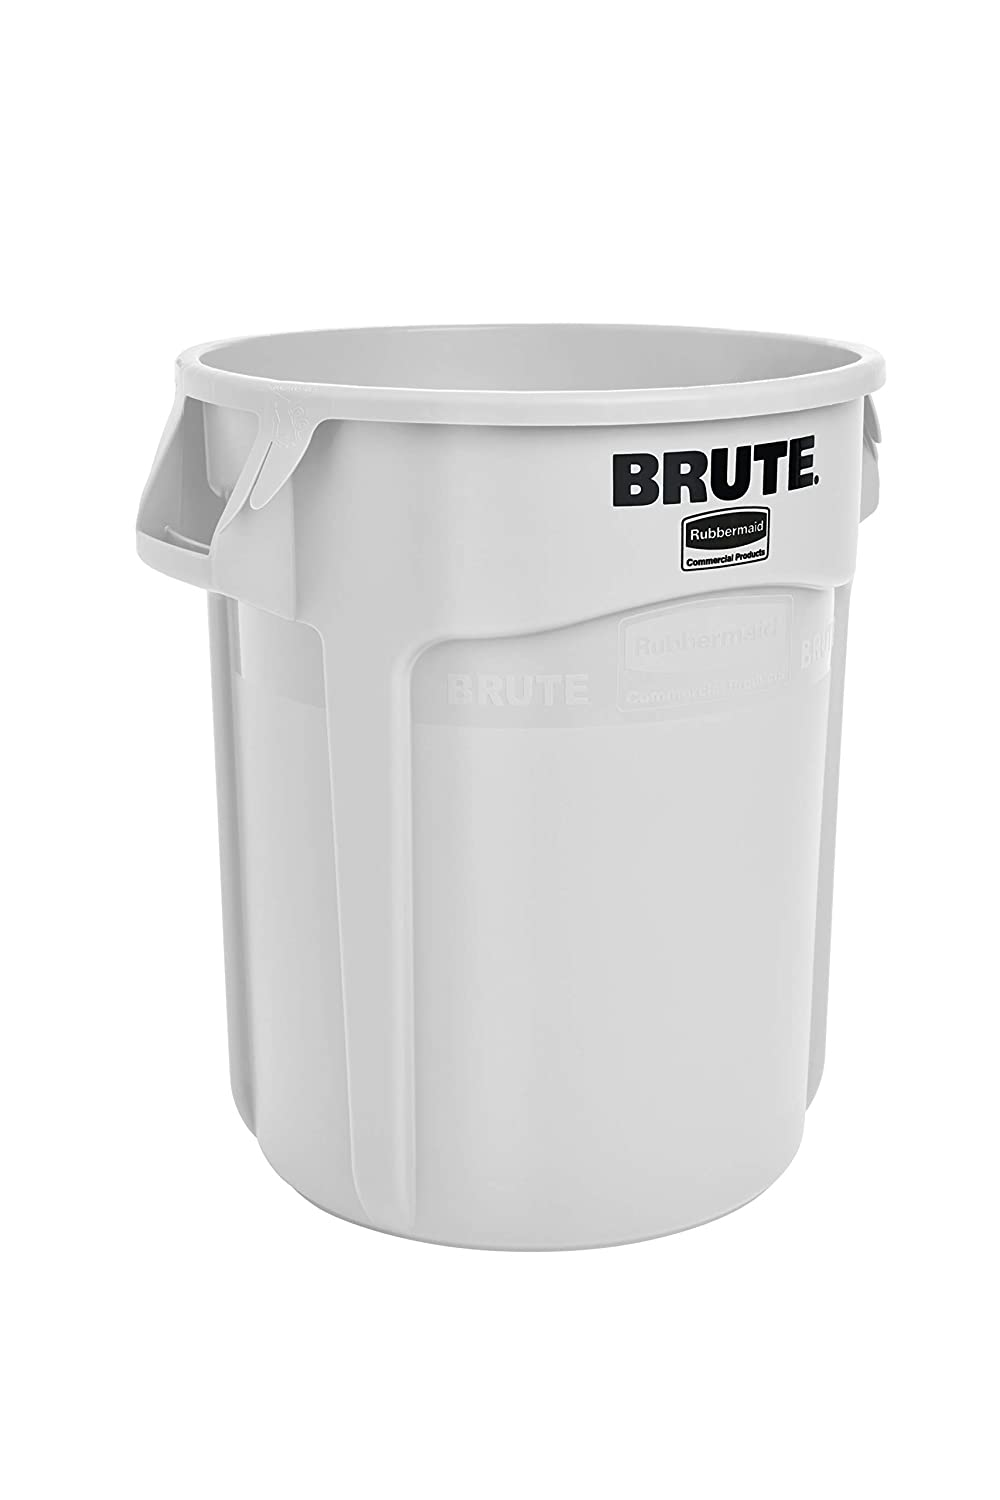 Rubbermaid Commercial Products FG261000WHT Brute Heavy-Duty Round Trash/Garbage Can, 10-Gallon, White